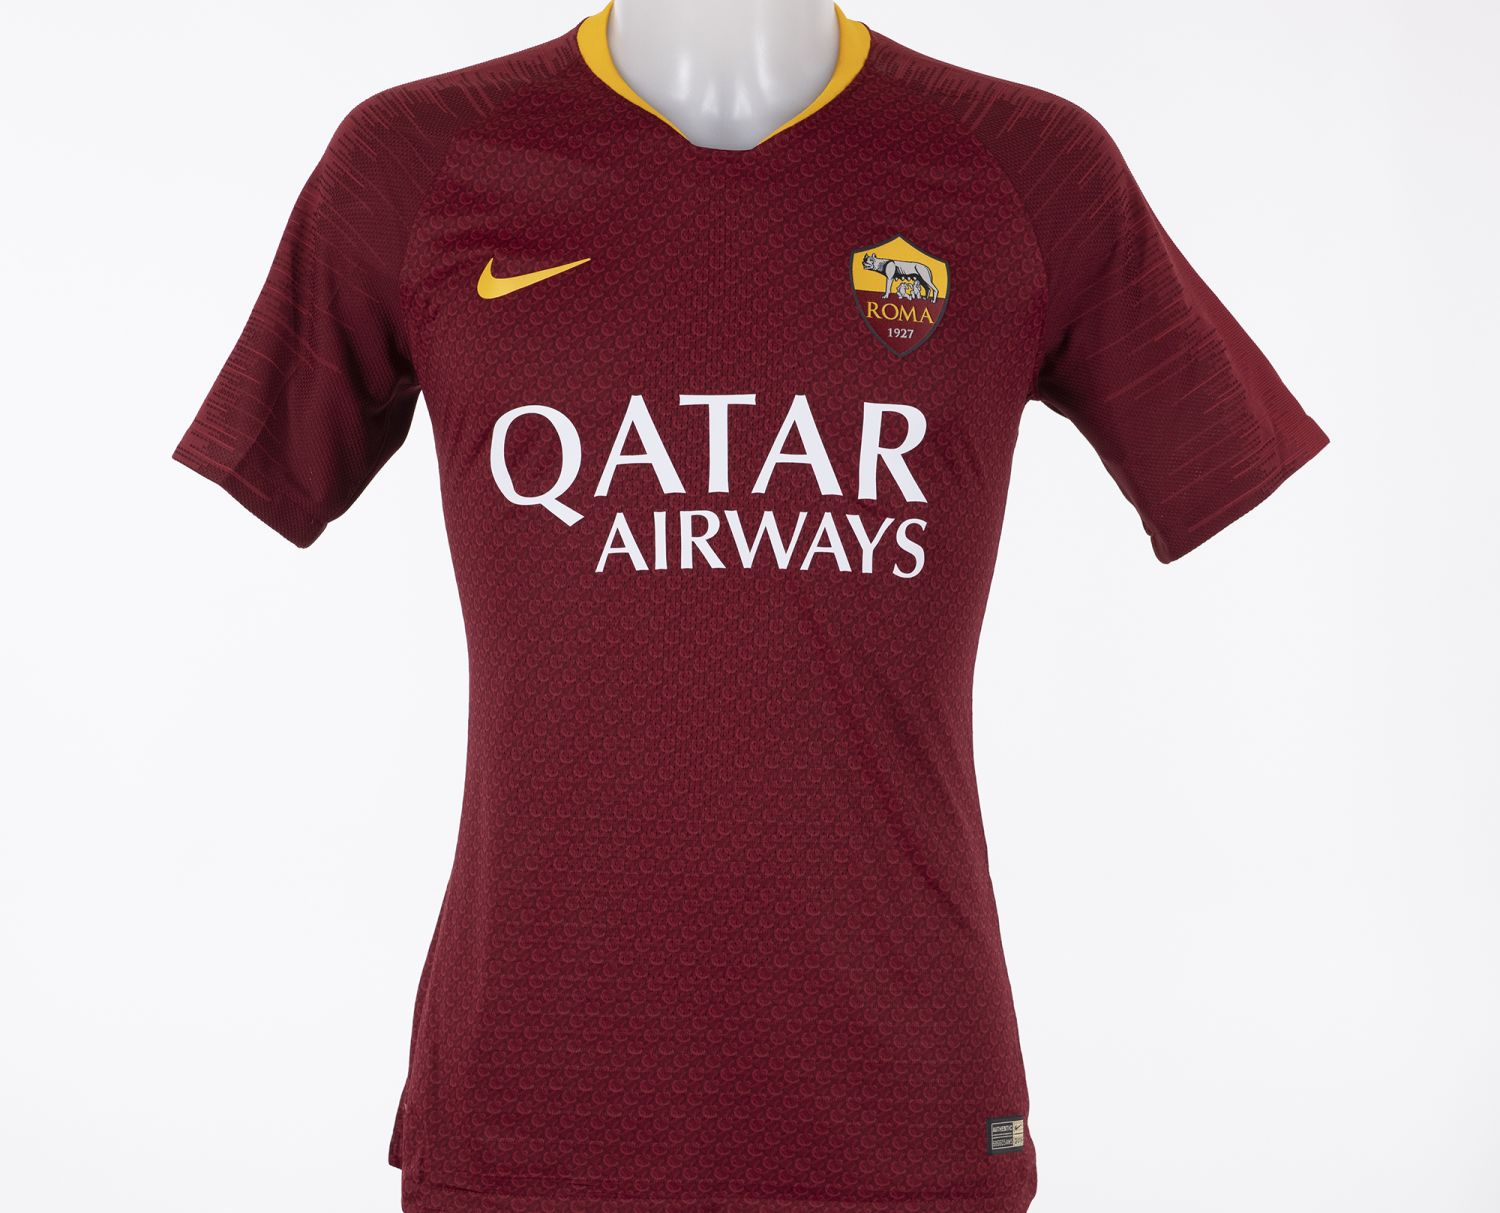 unique-nike-as-roma-18-19-kit-font%2B%25